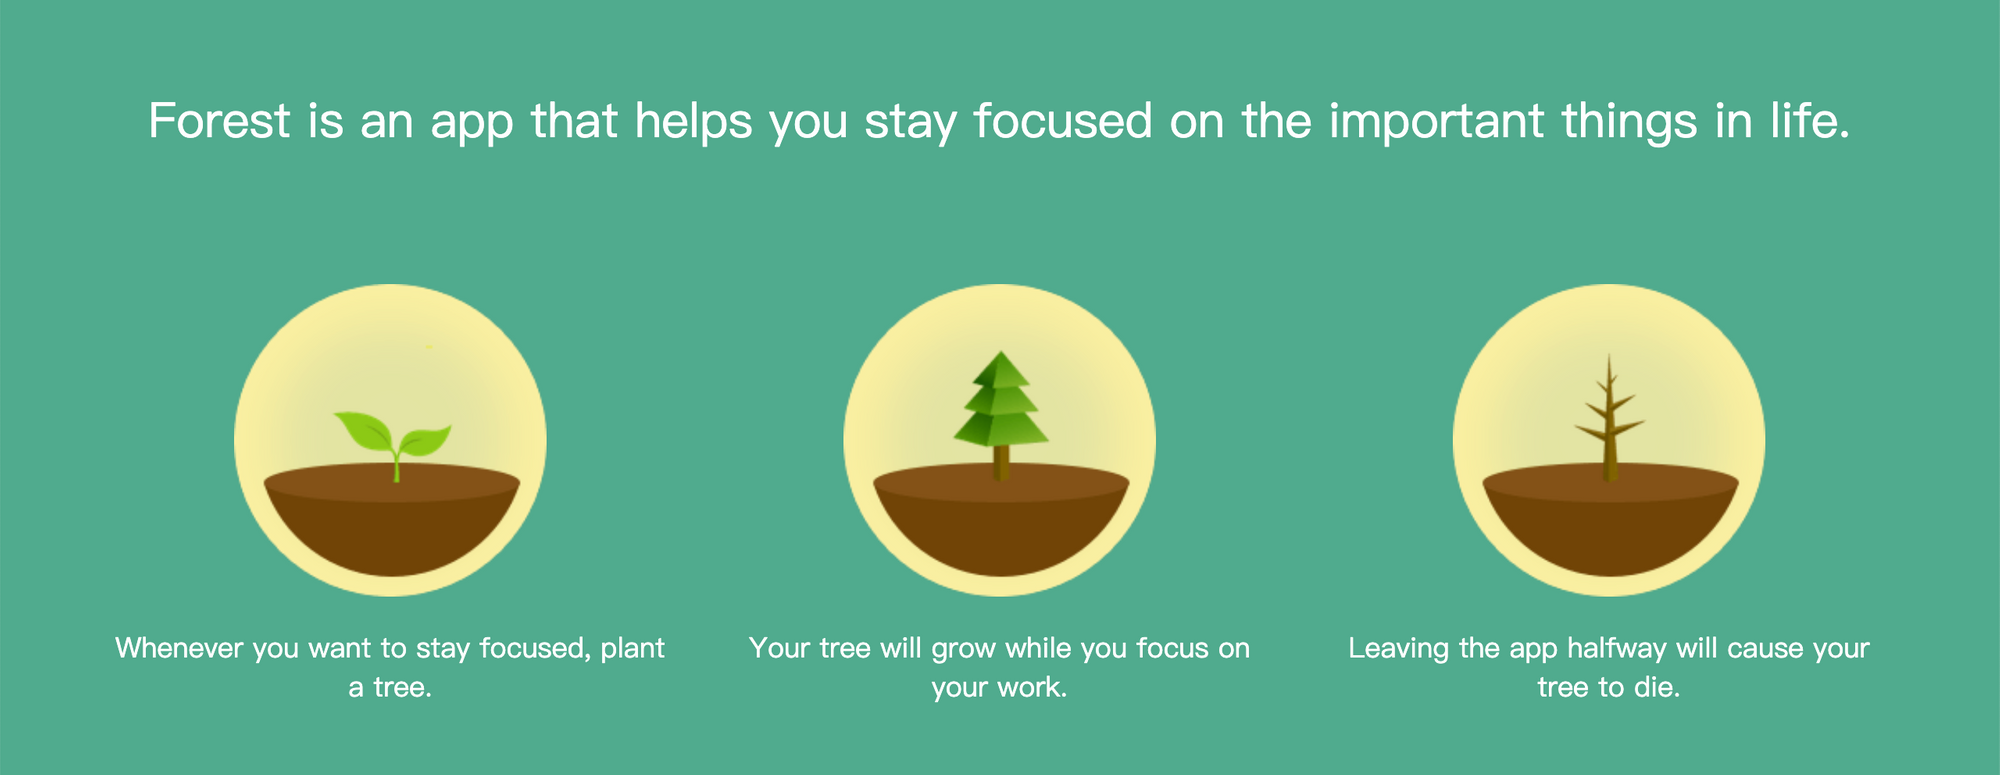 """Forest"" app helps your productivity by growing a tree every time you stay focused enough"